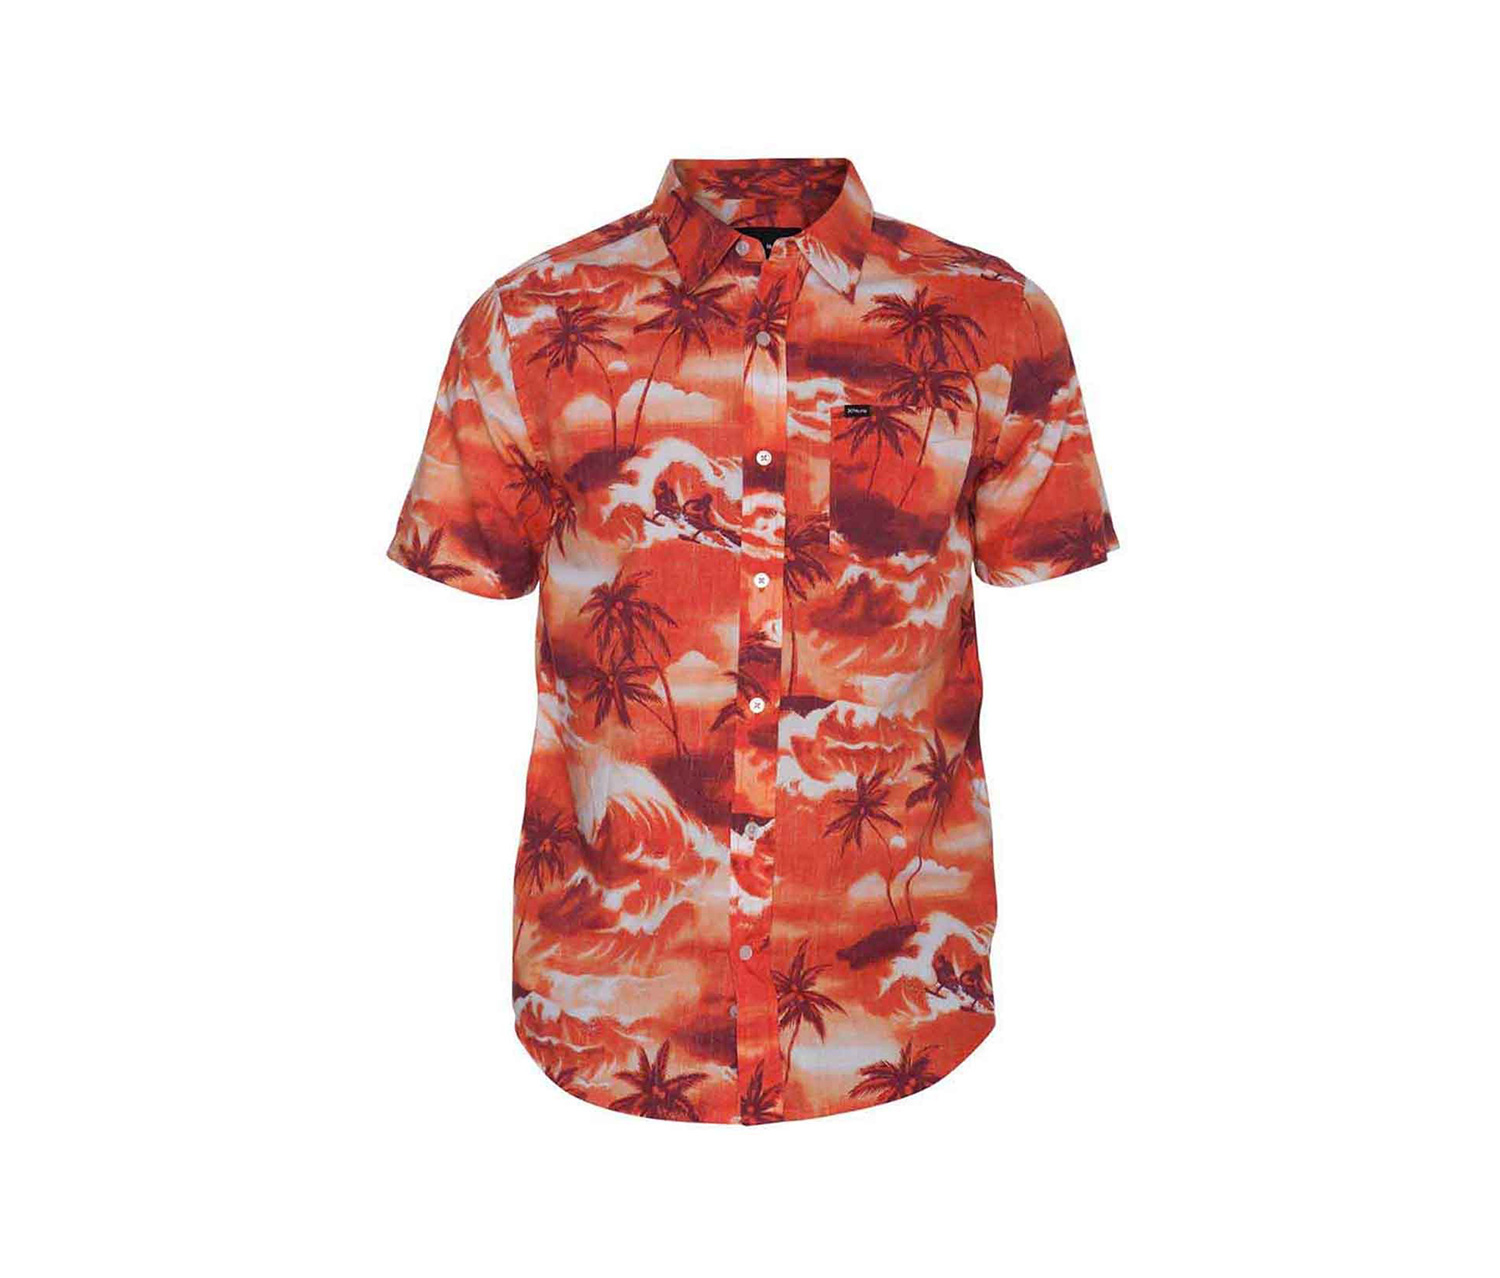 Hurley Men's Island Shirt, Orange